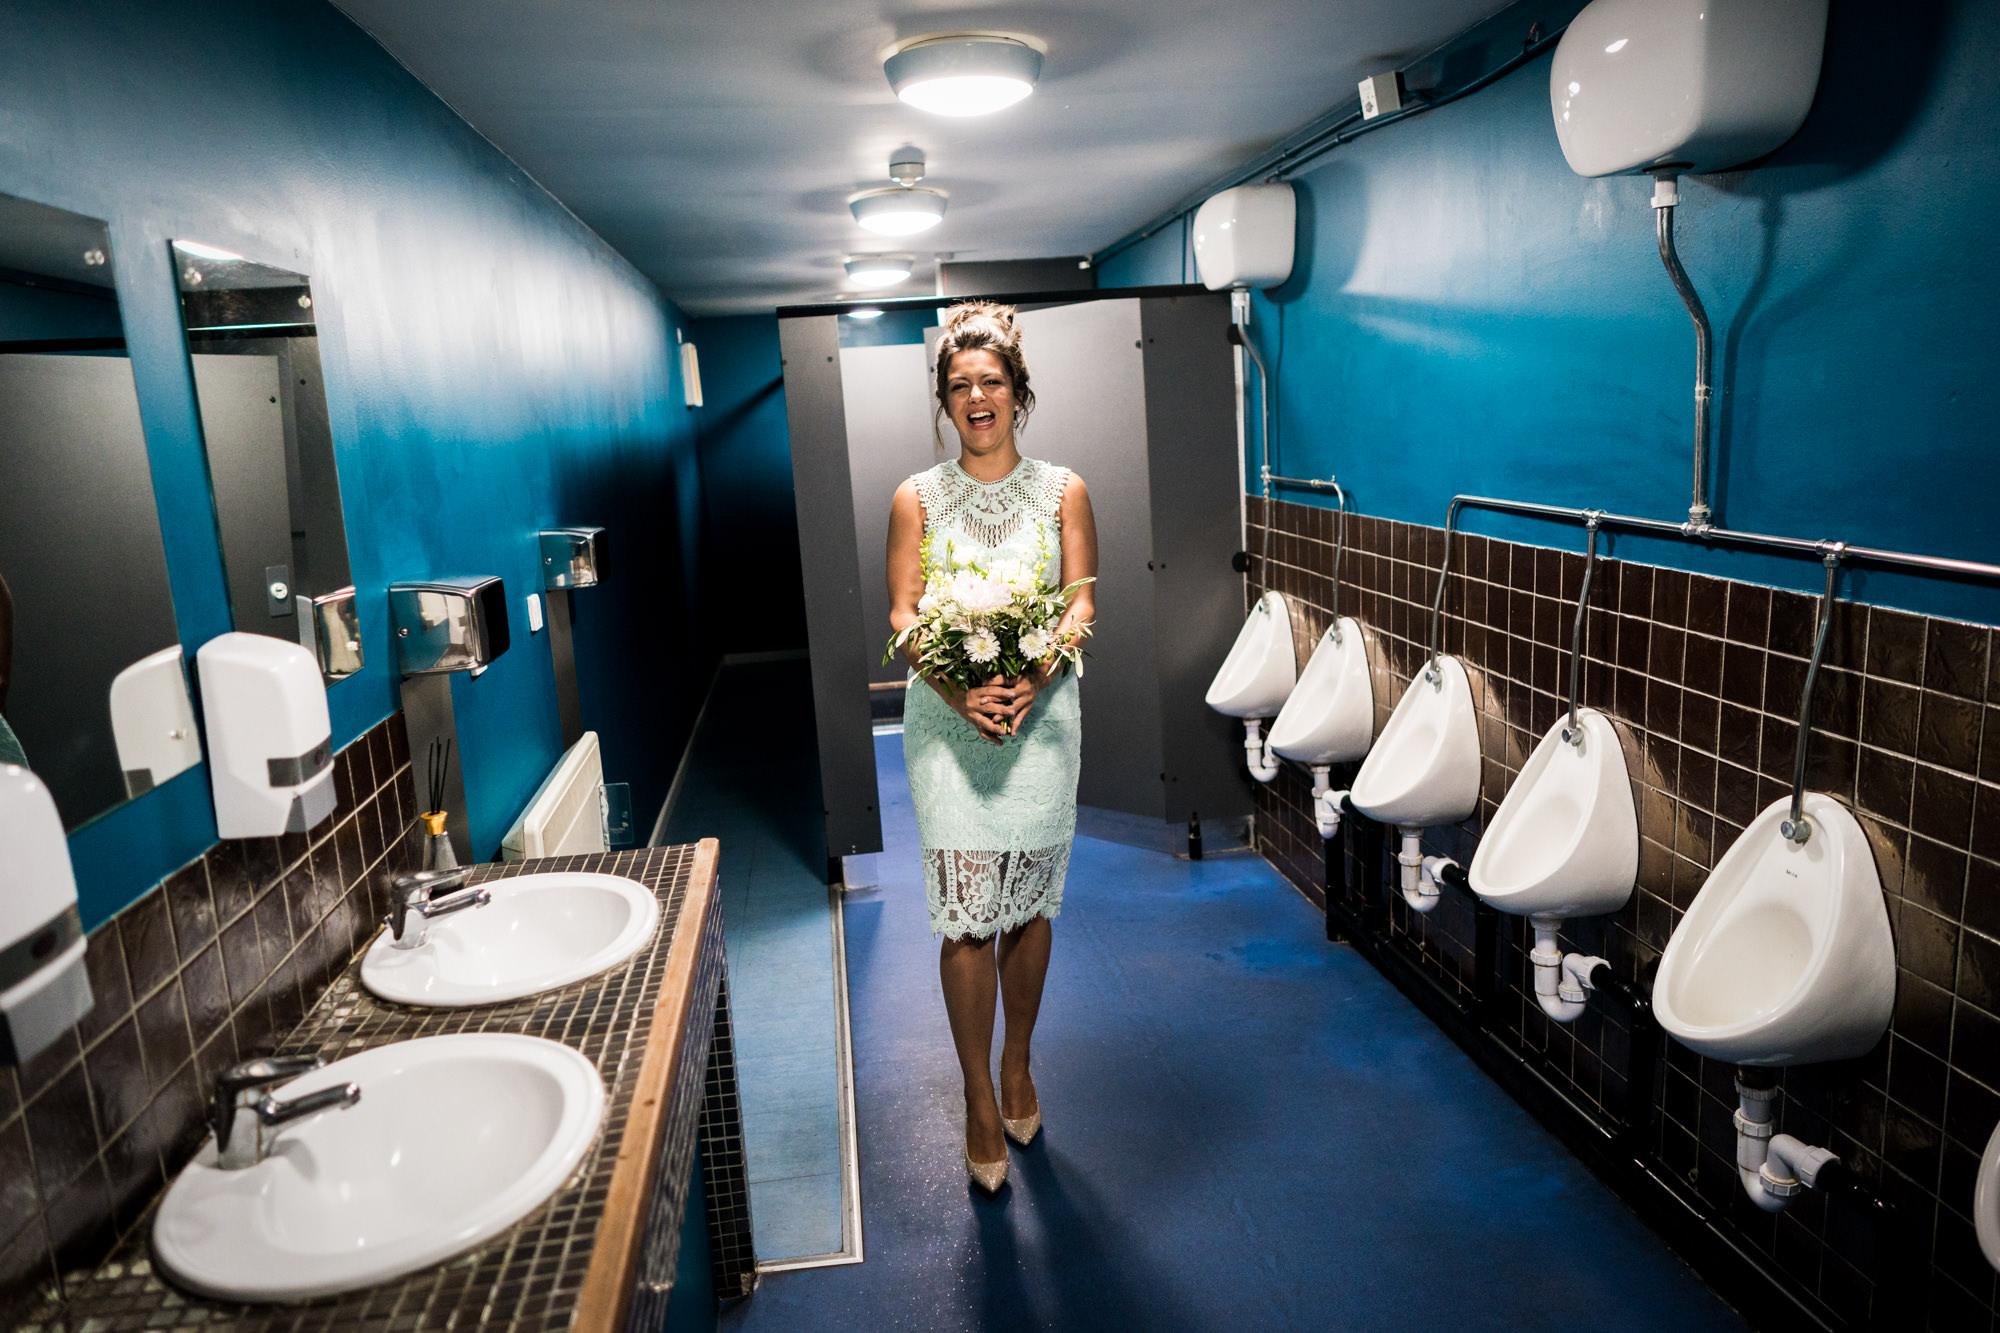 When the men's toilet is the only place long enough to practice your walk down the aisle.